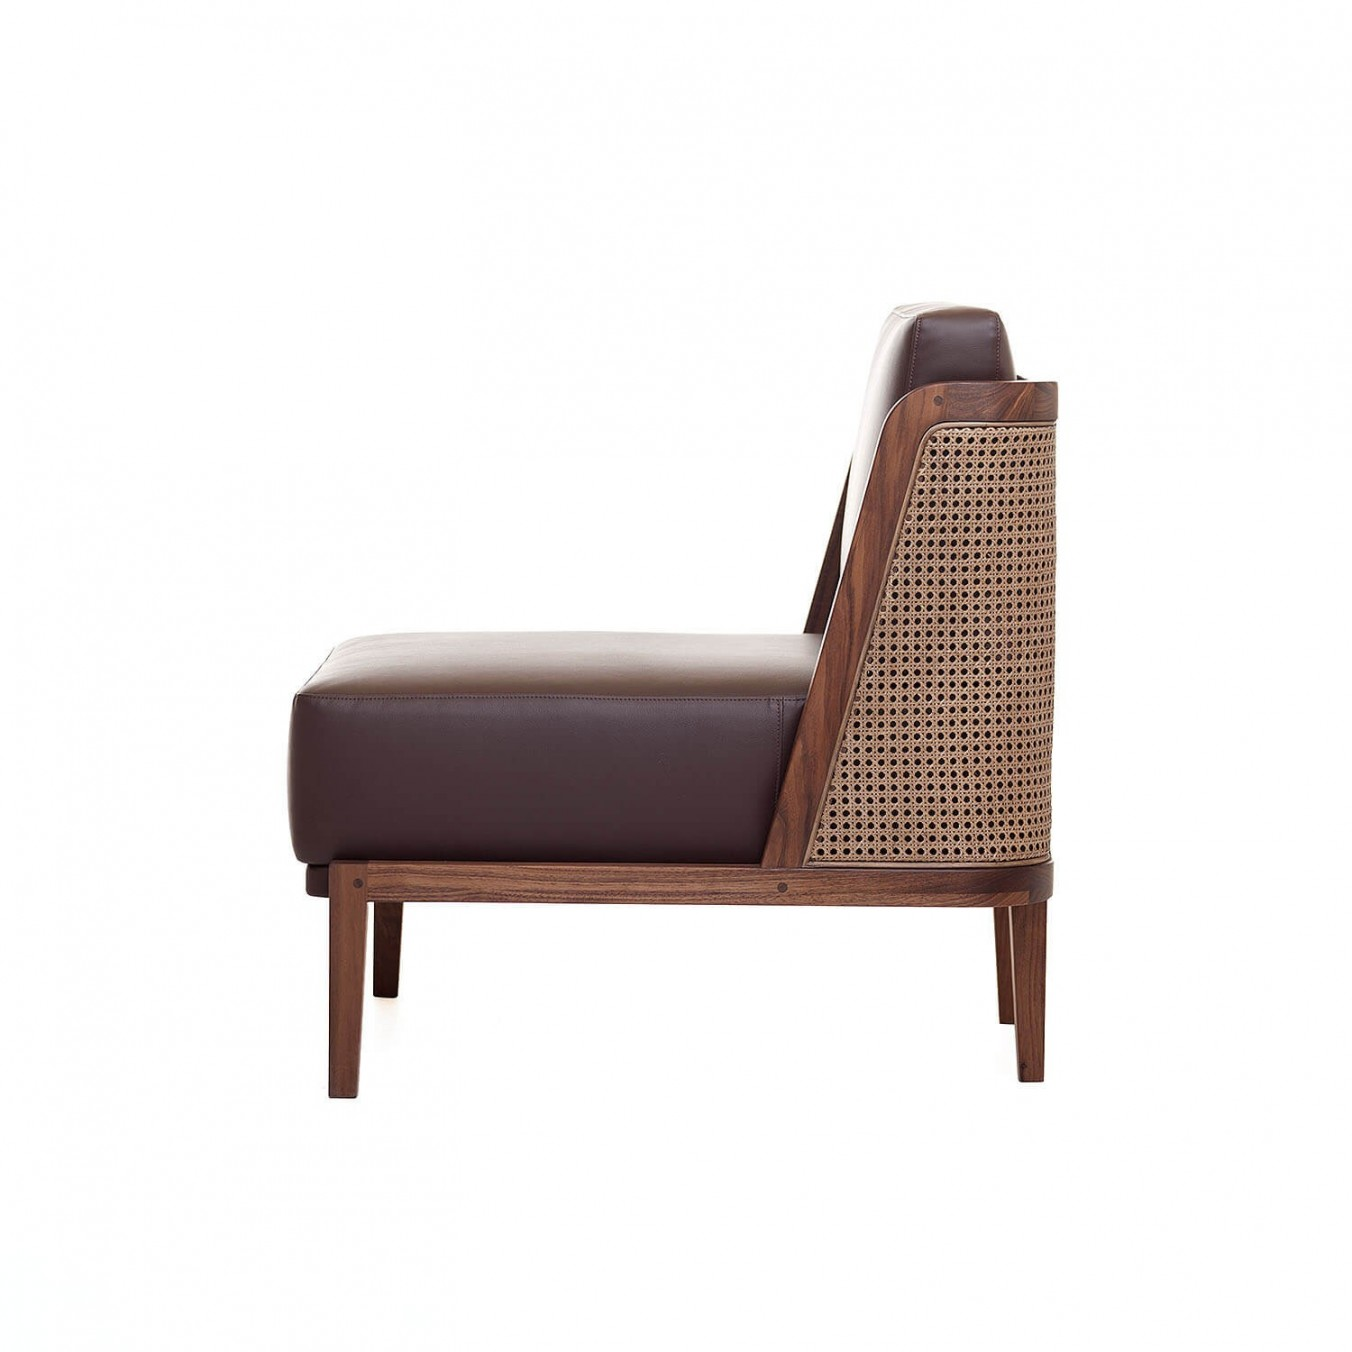 THRONE LOUNGE CHAIR WITH RATTAN